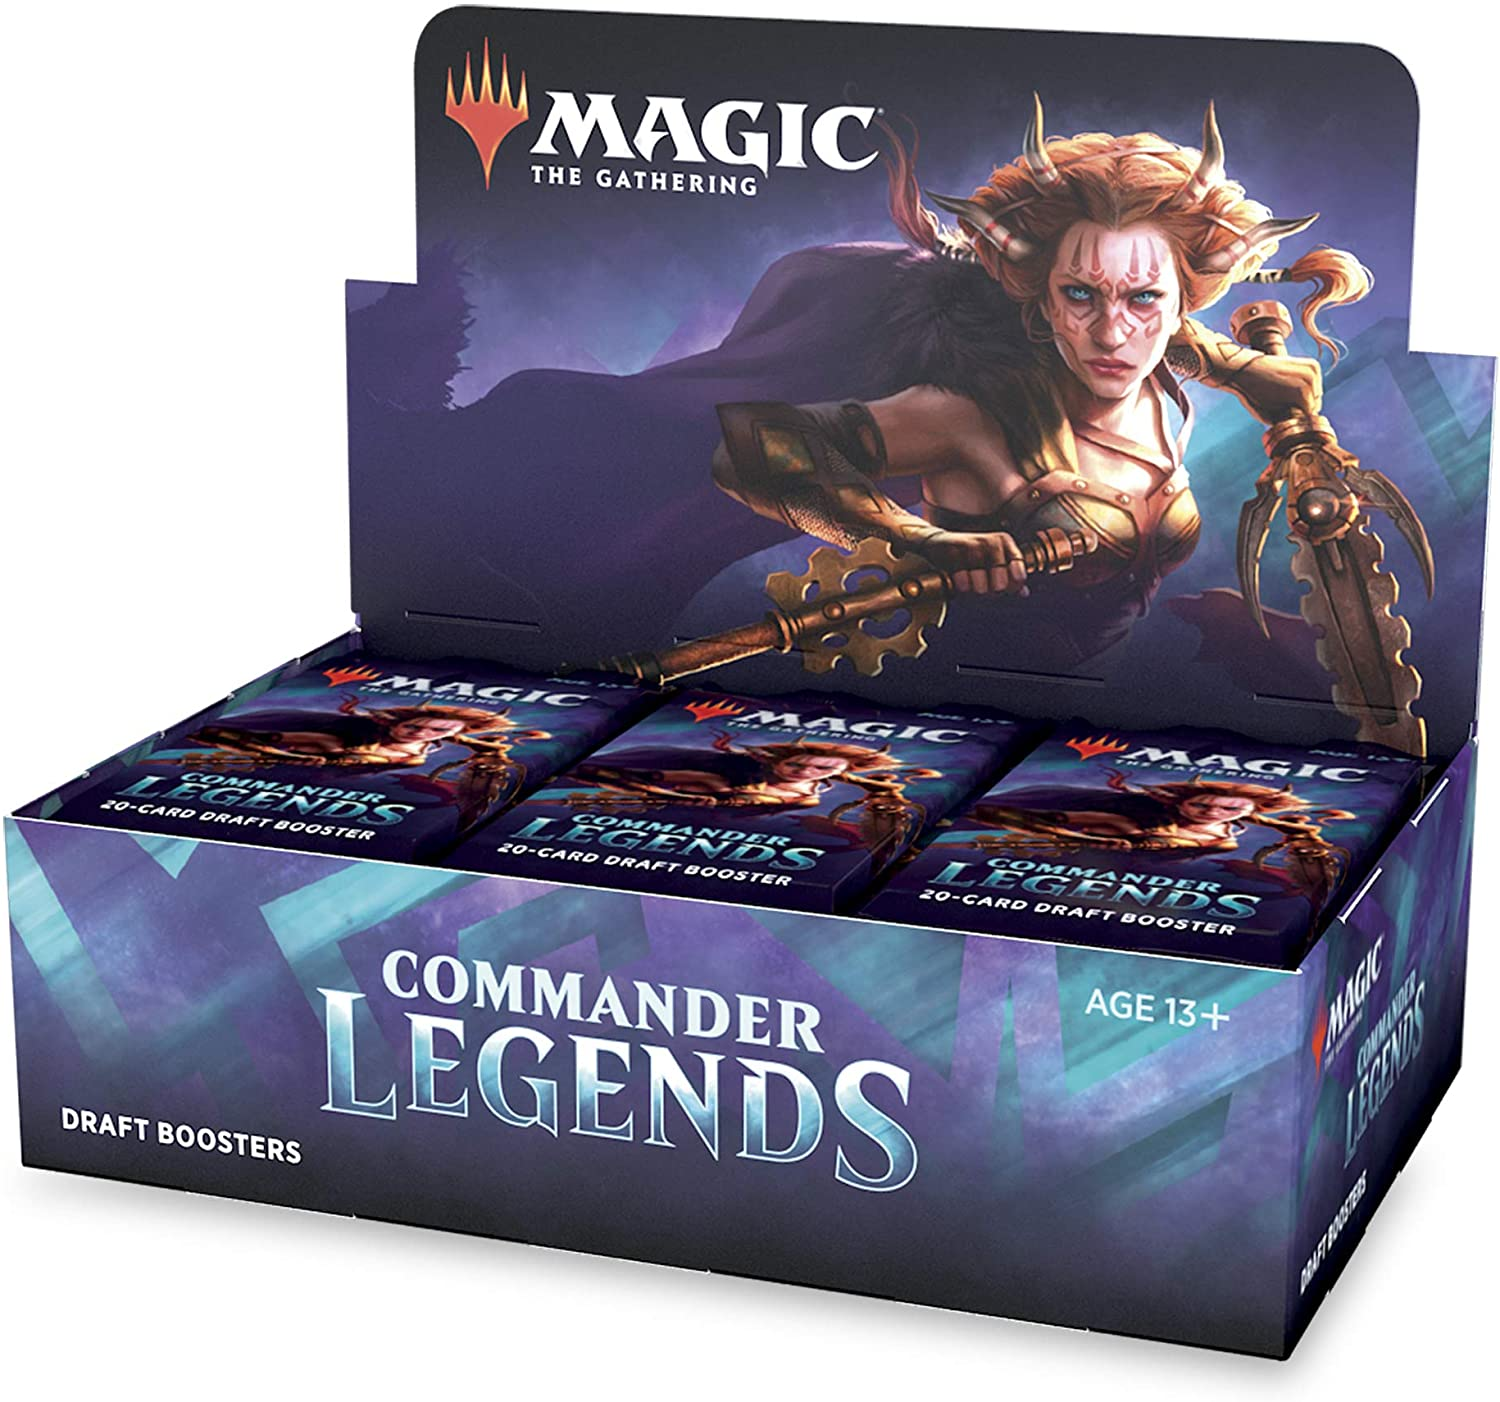 Amazon.com: Magic: The Gathering Commander Legends Draft Booster Box | 24 Booster  Packs (480 Cards) | 2 Legends Per Pack | Factory Sealed: Toys & Games